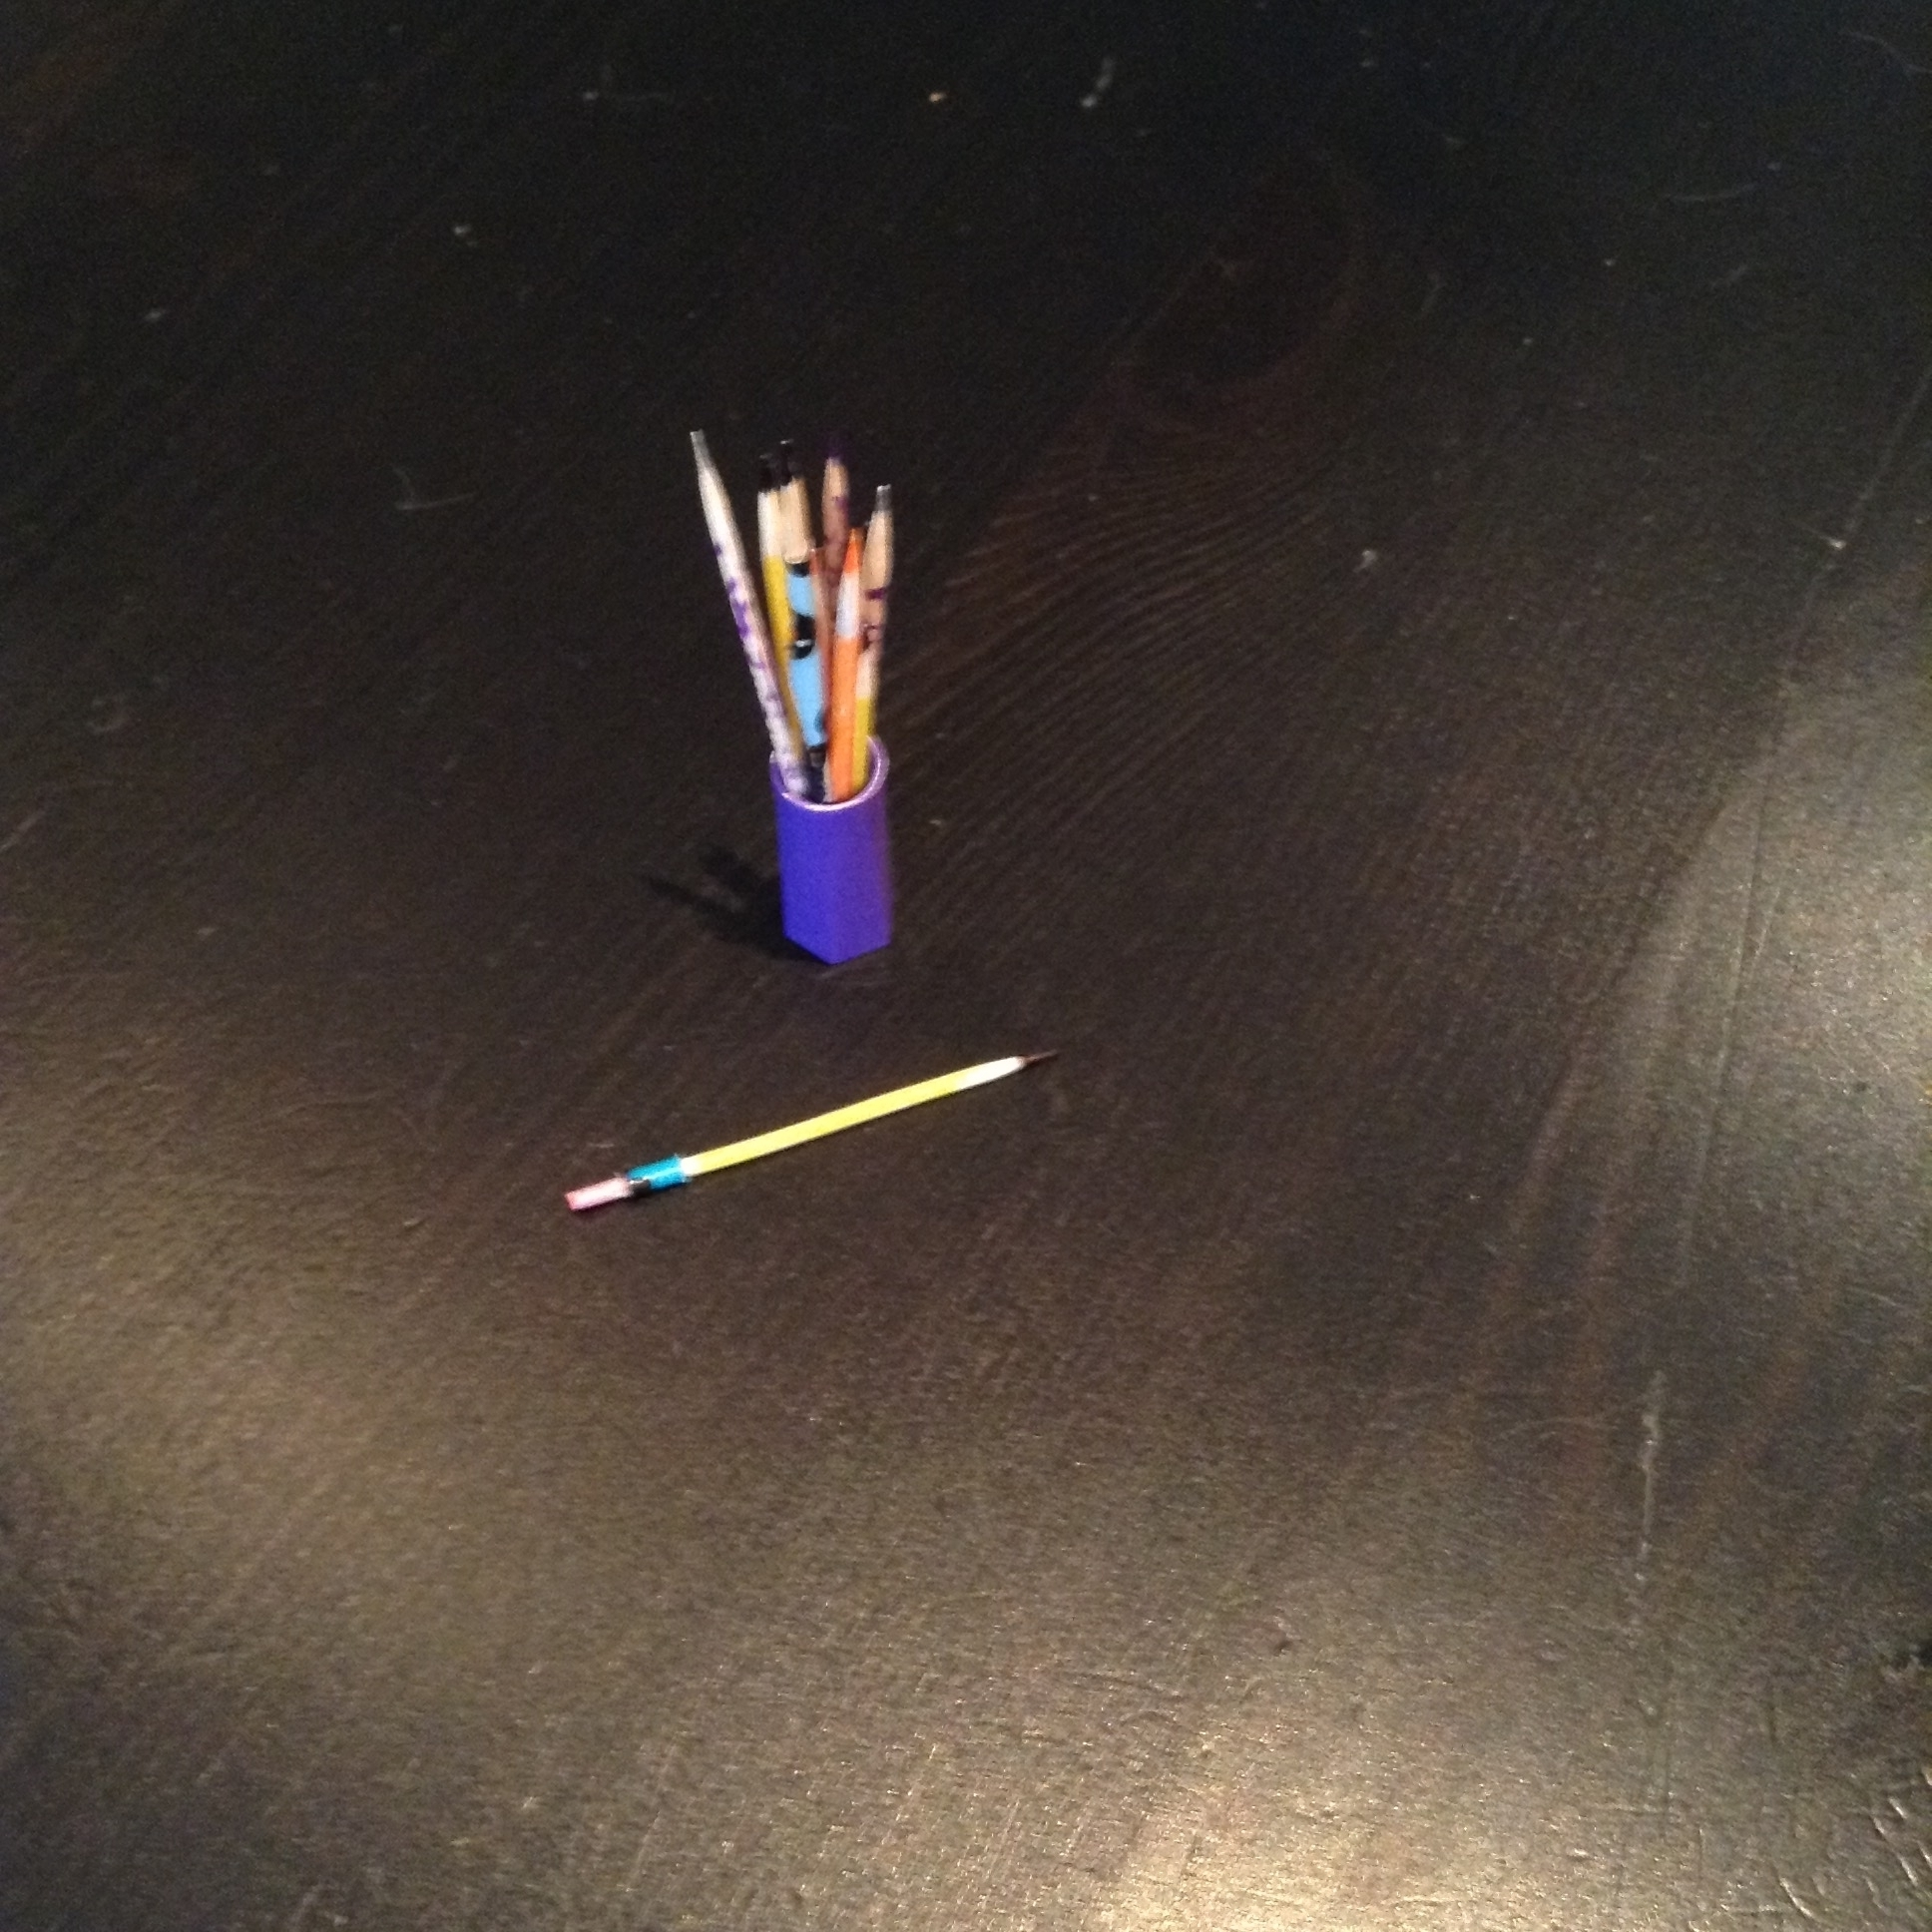 AG pencil holder and pencils